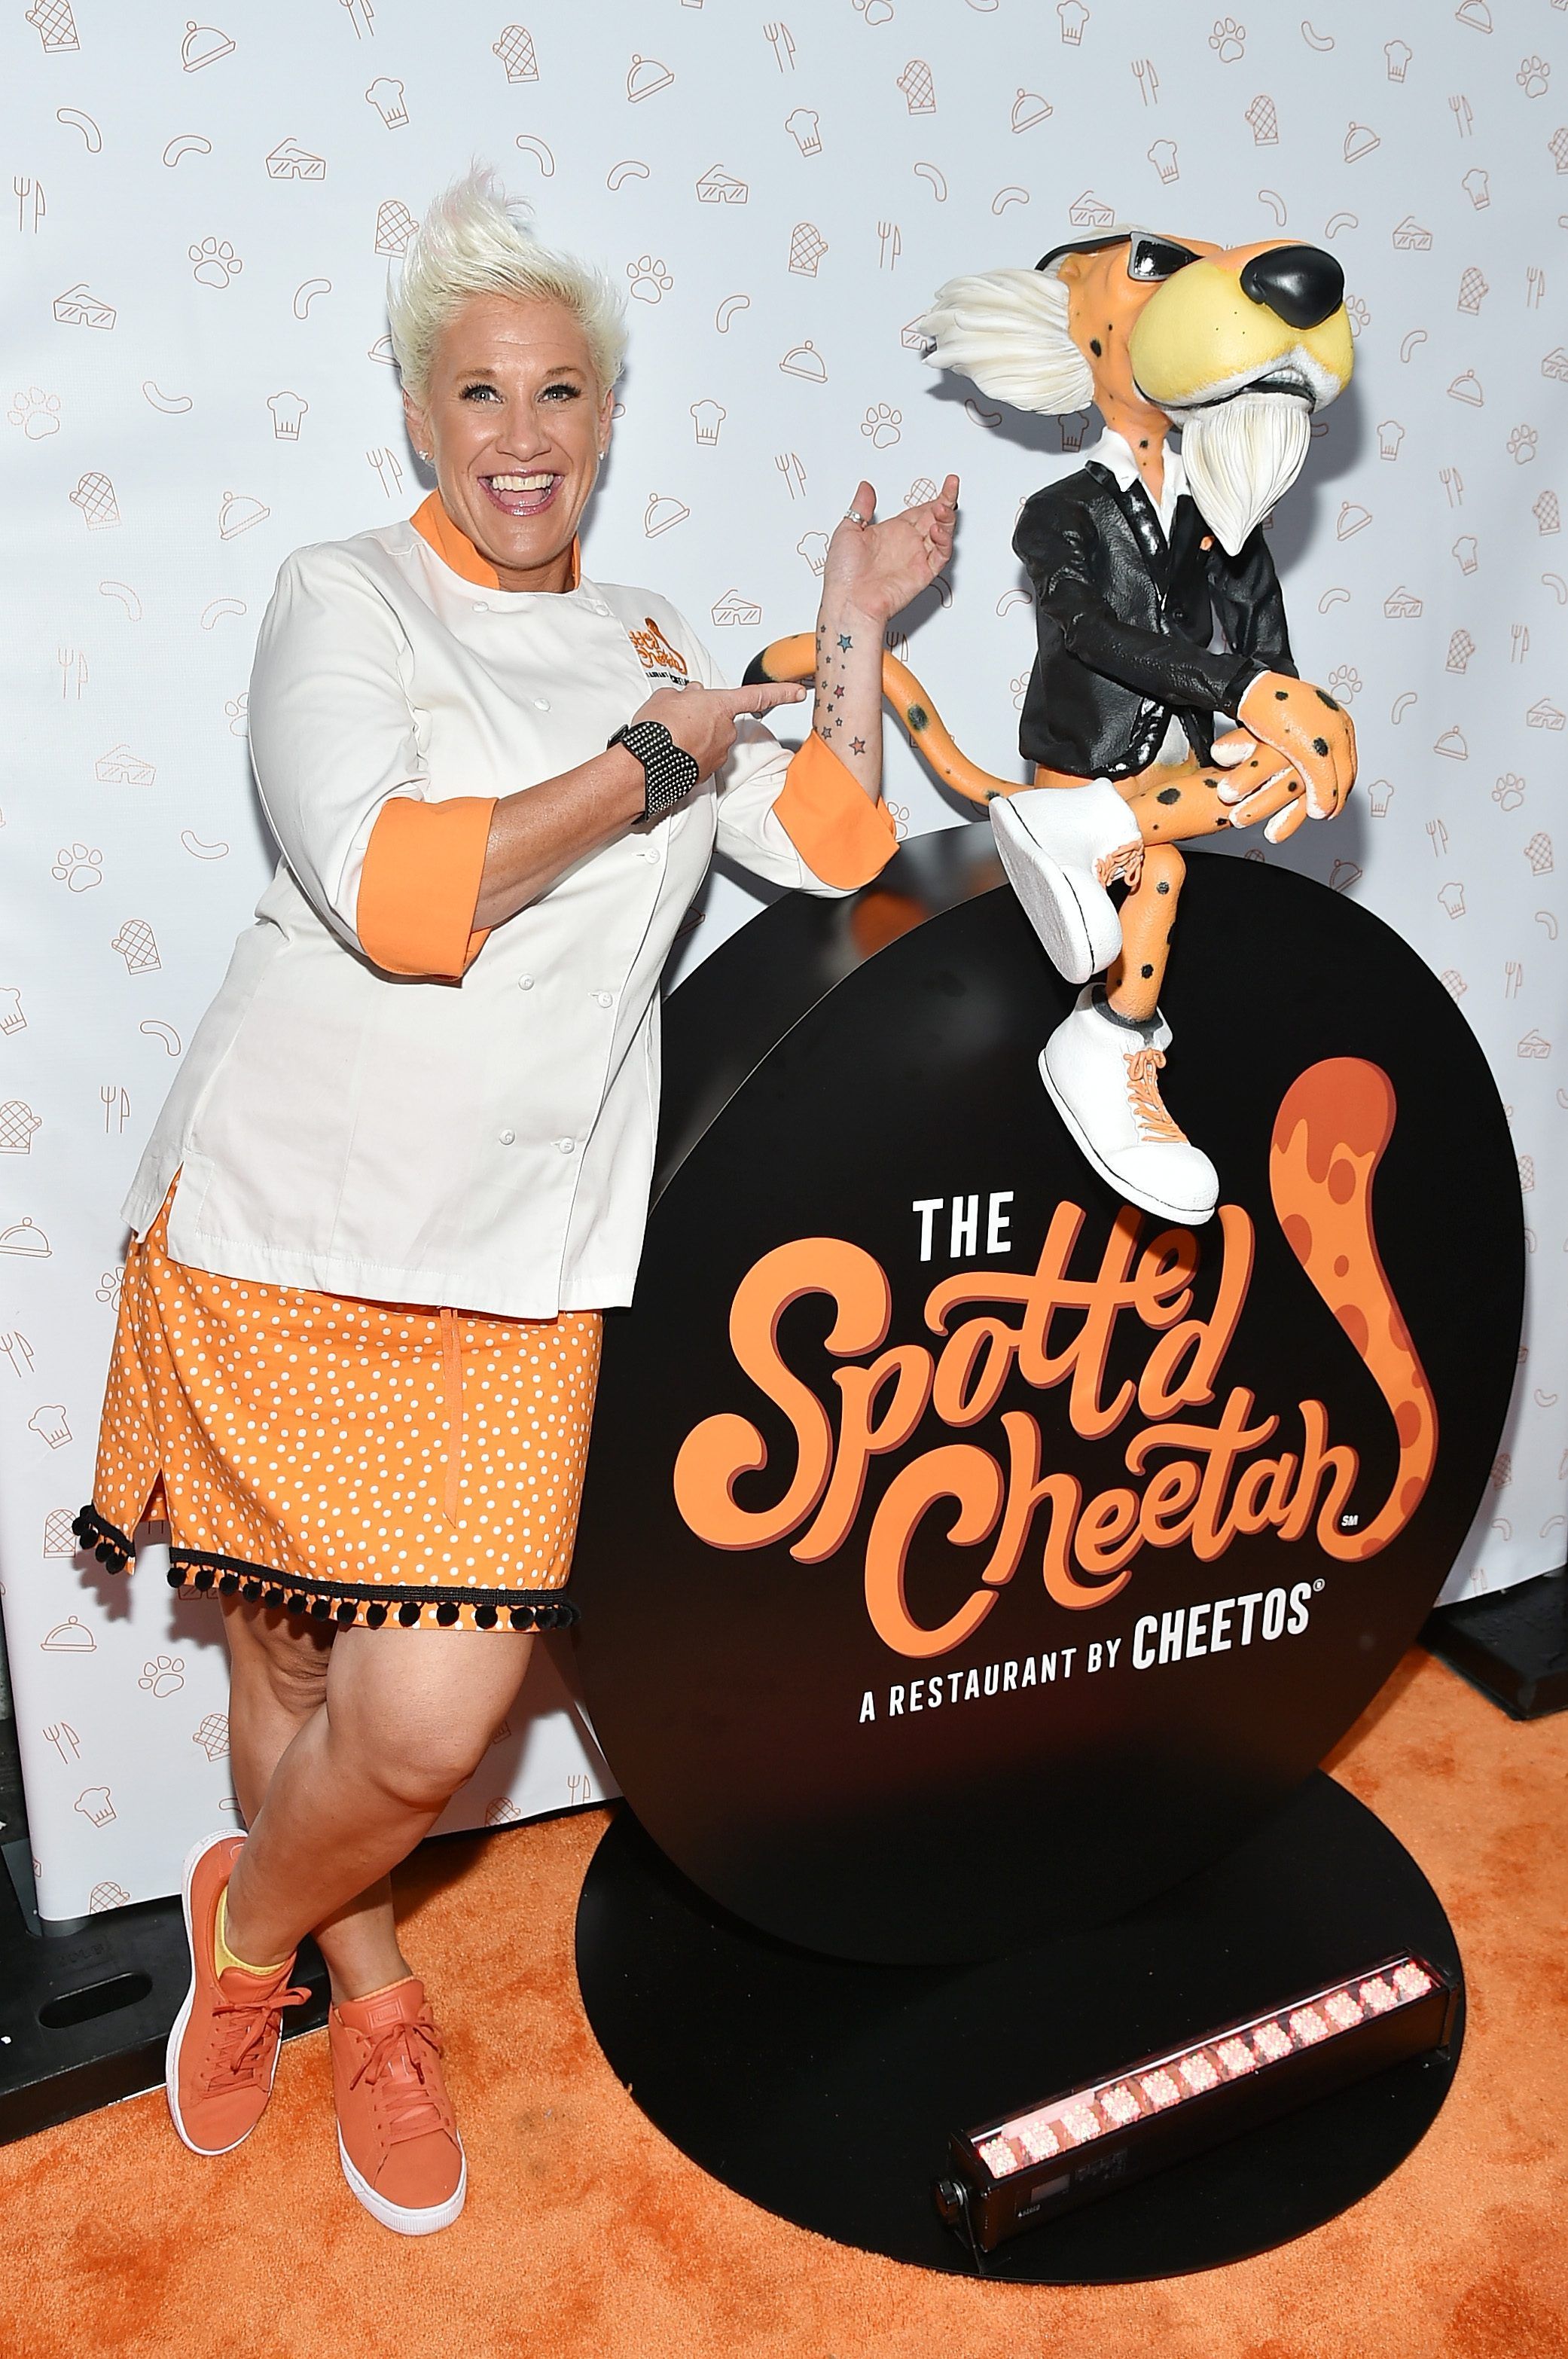 Cheetos Brand And Chester Cheetah Open The First-Ever Cheetos Restaurant, The Spotted Cheetah